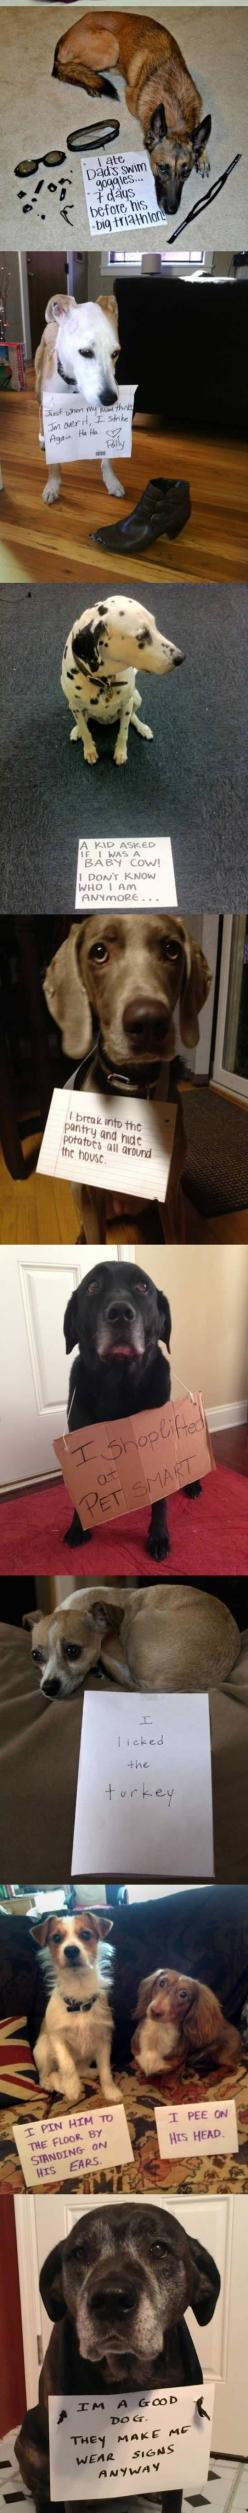 Dogs.: Funny Animals, Guilty Dog, Pet, Cute Dog Funny, Dogs Funny Shaming, Baby Cows, Funny Dog Shaming Signs, Cute Funny Dogs, Dog Shame Signs